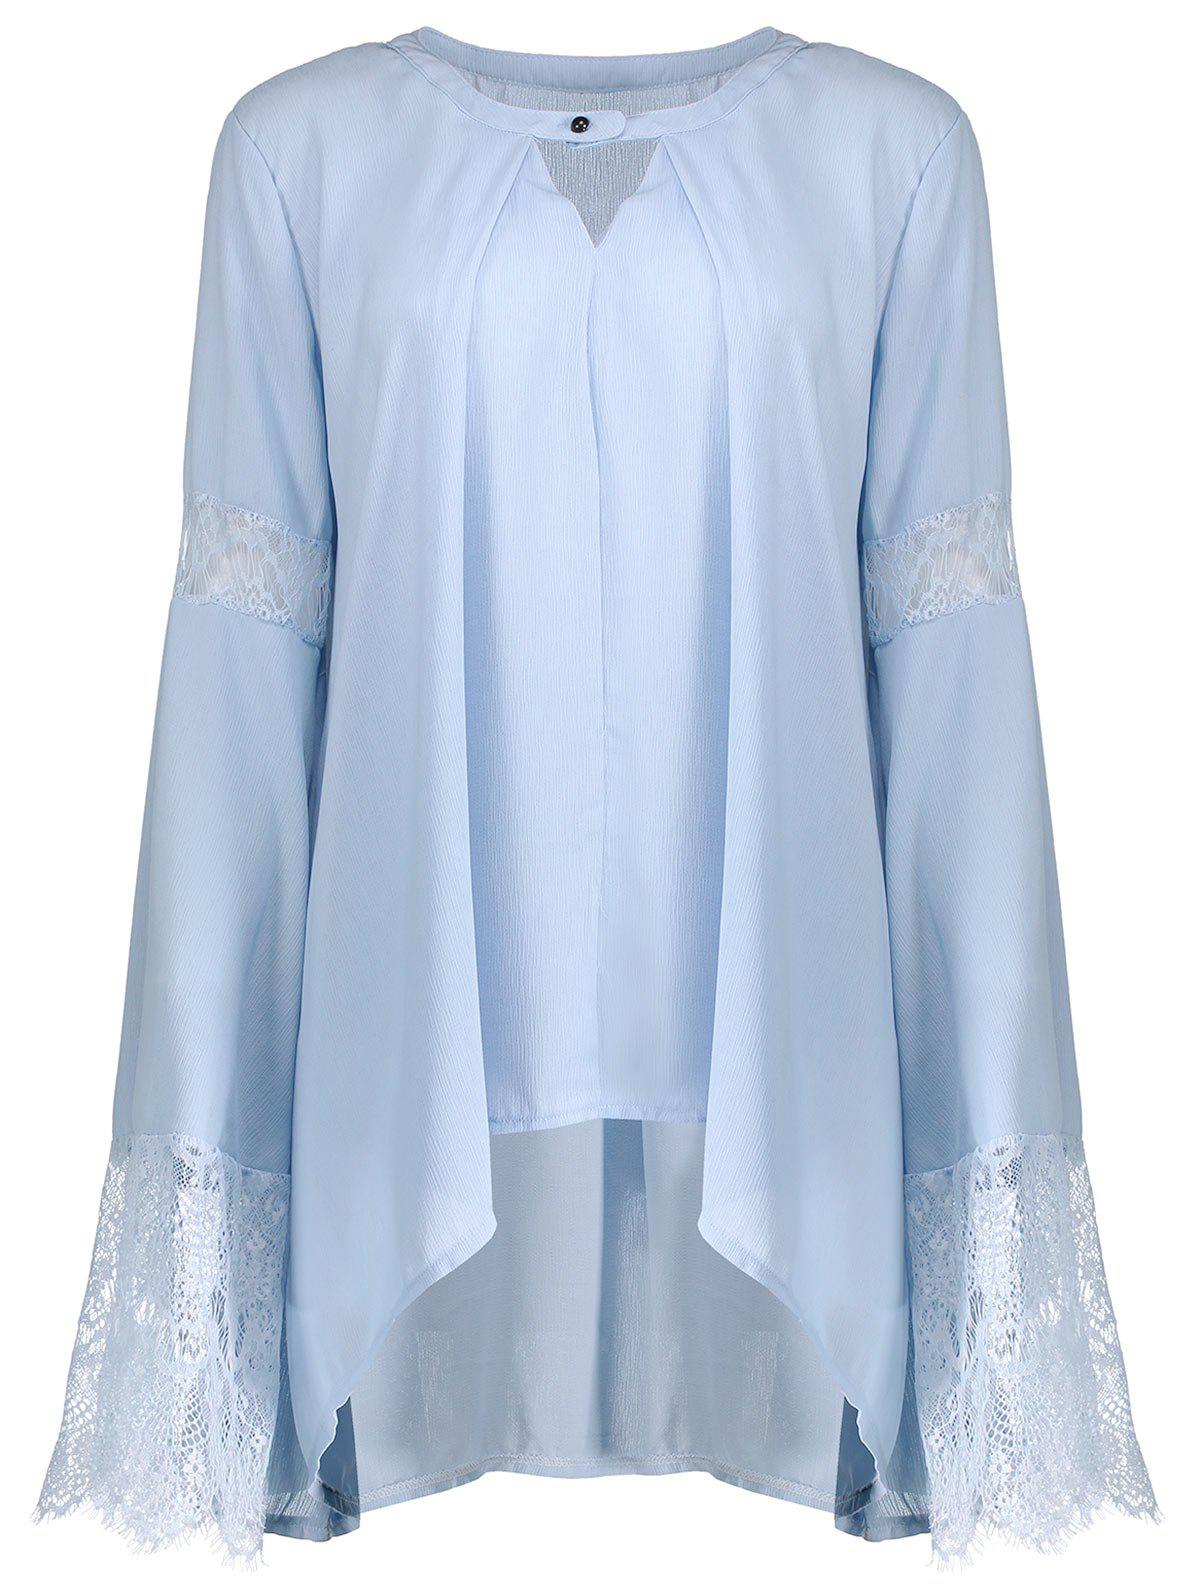 Flare Sleeve Chiffon Blouse with Lace Trim - BLUE XL